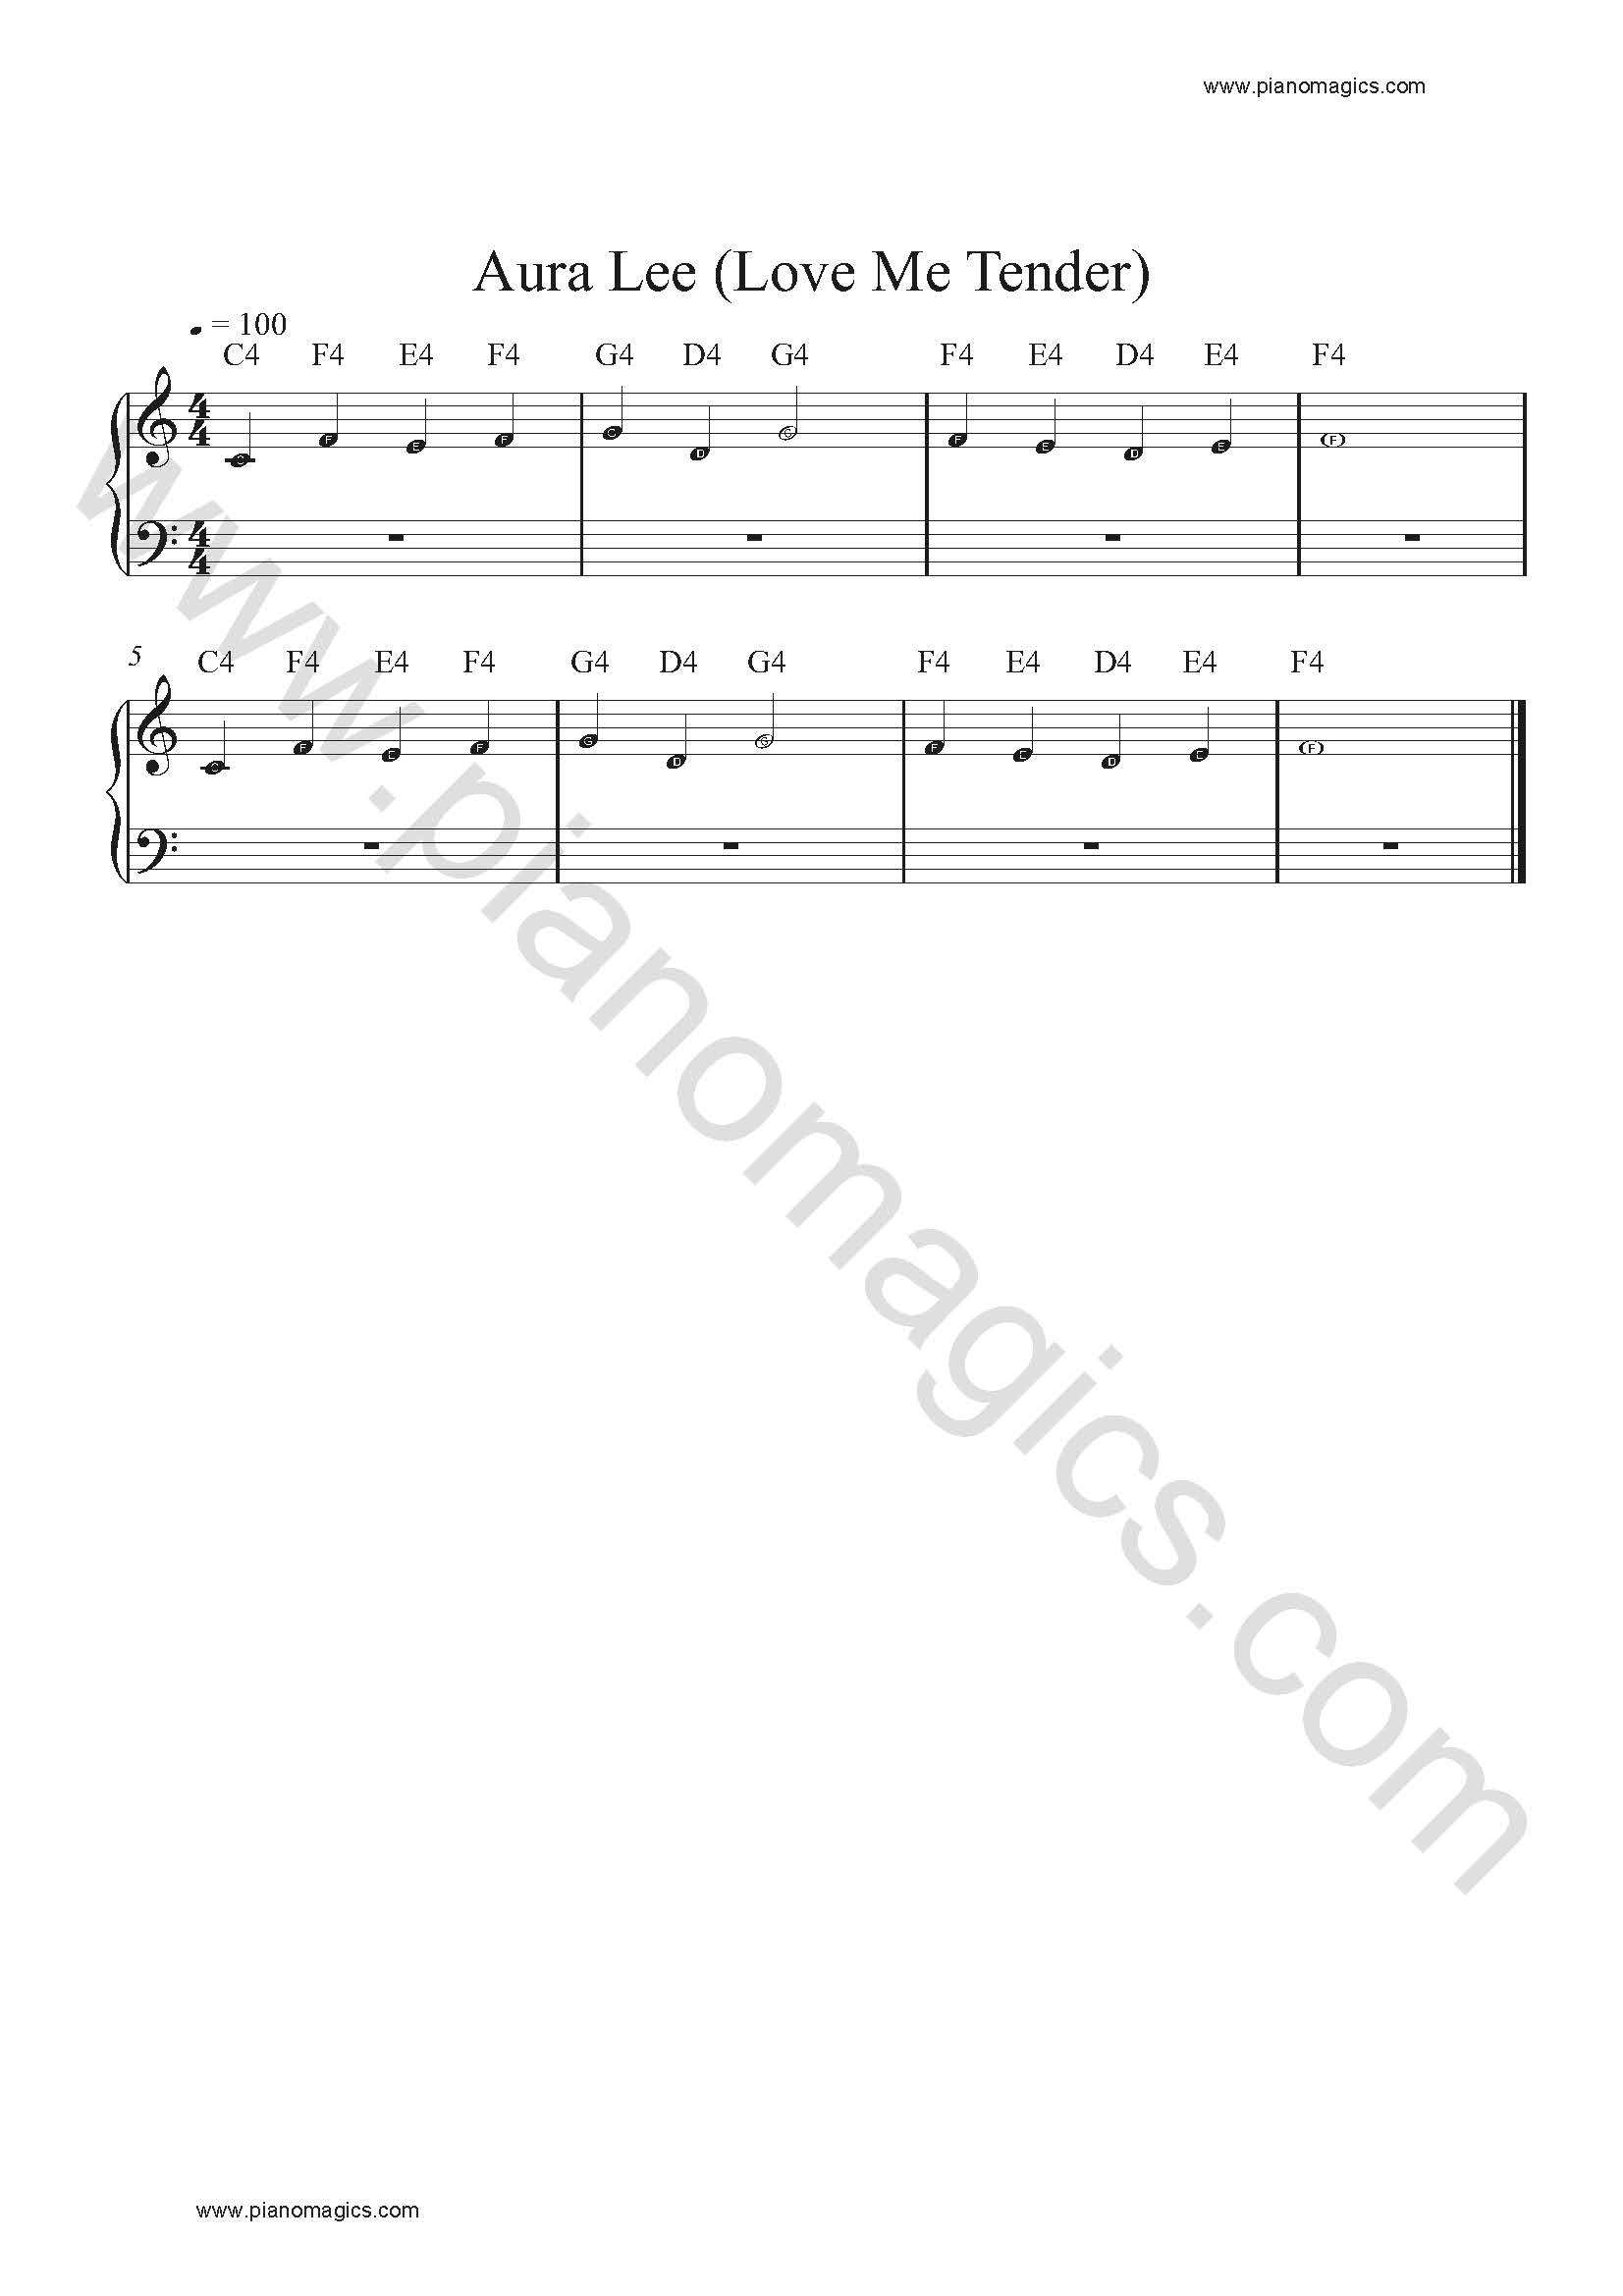 aura lee sheet music